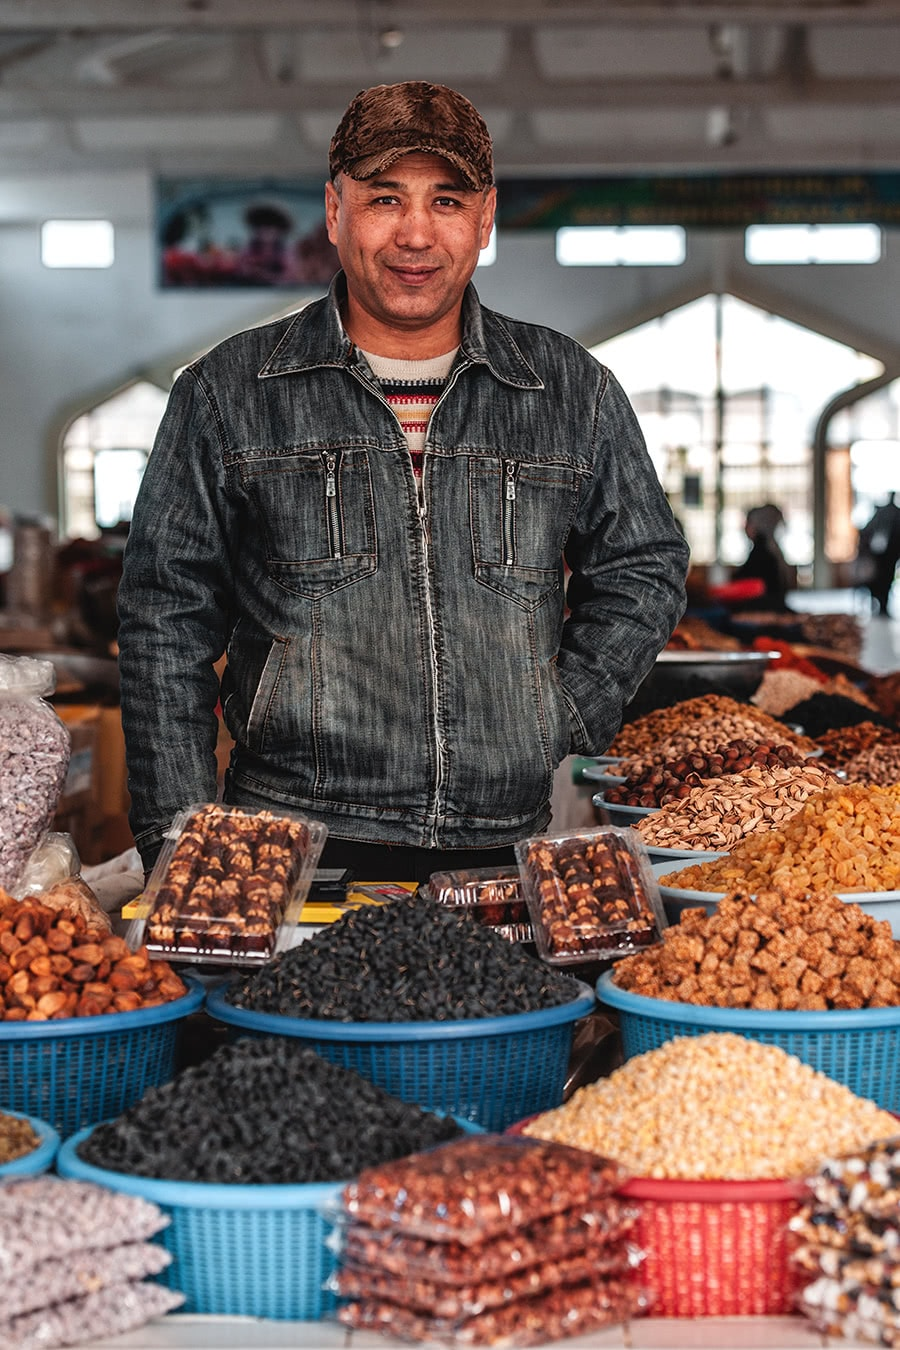 Vendor at the Samarkand market.